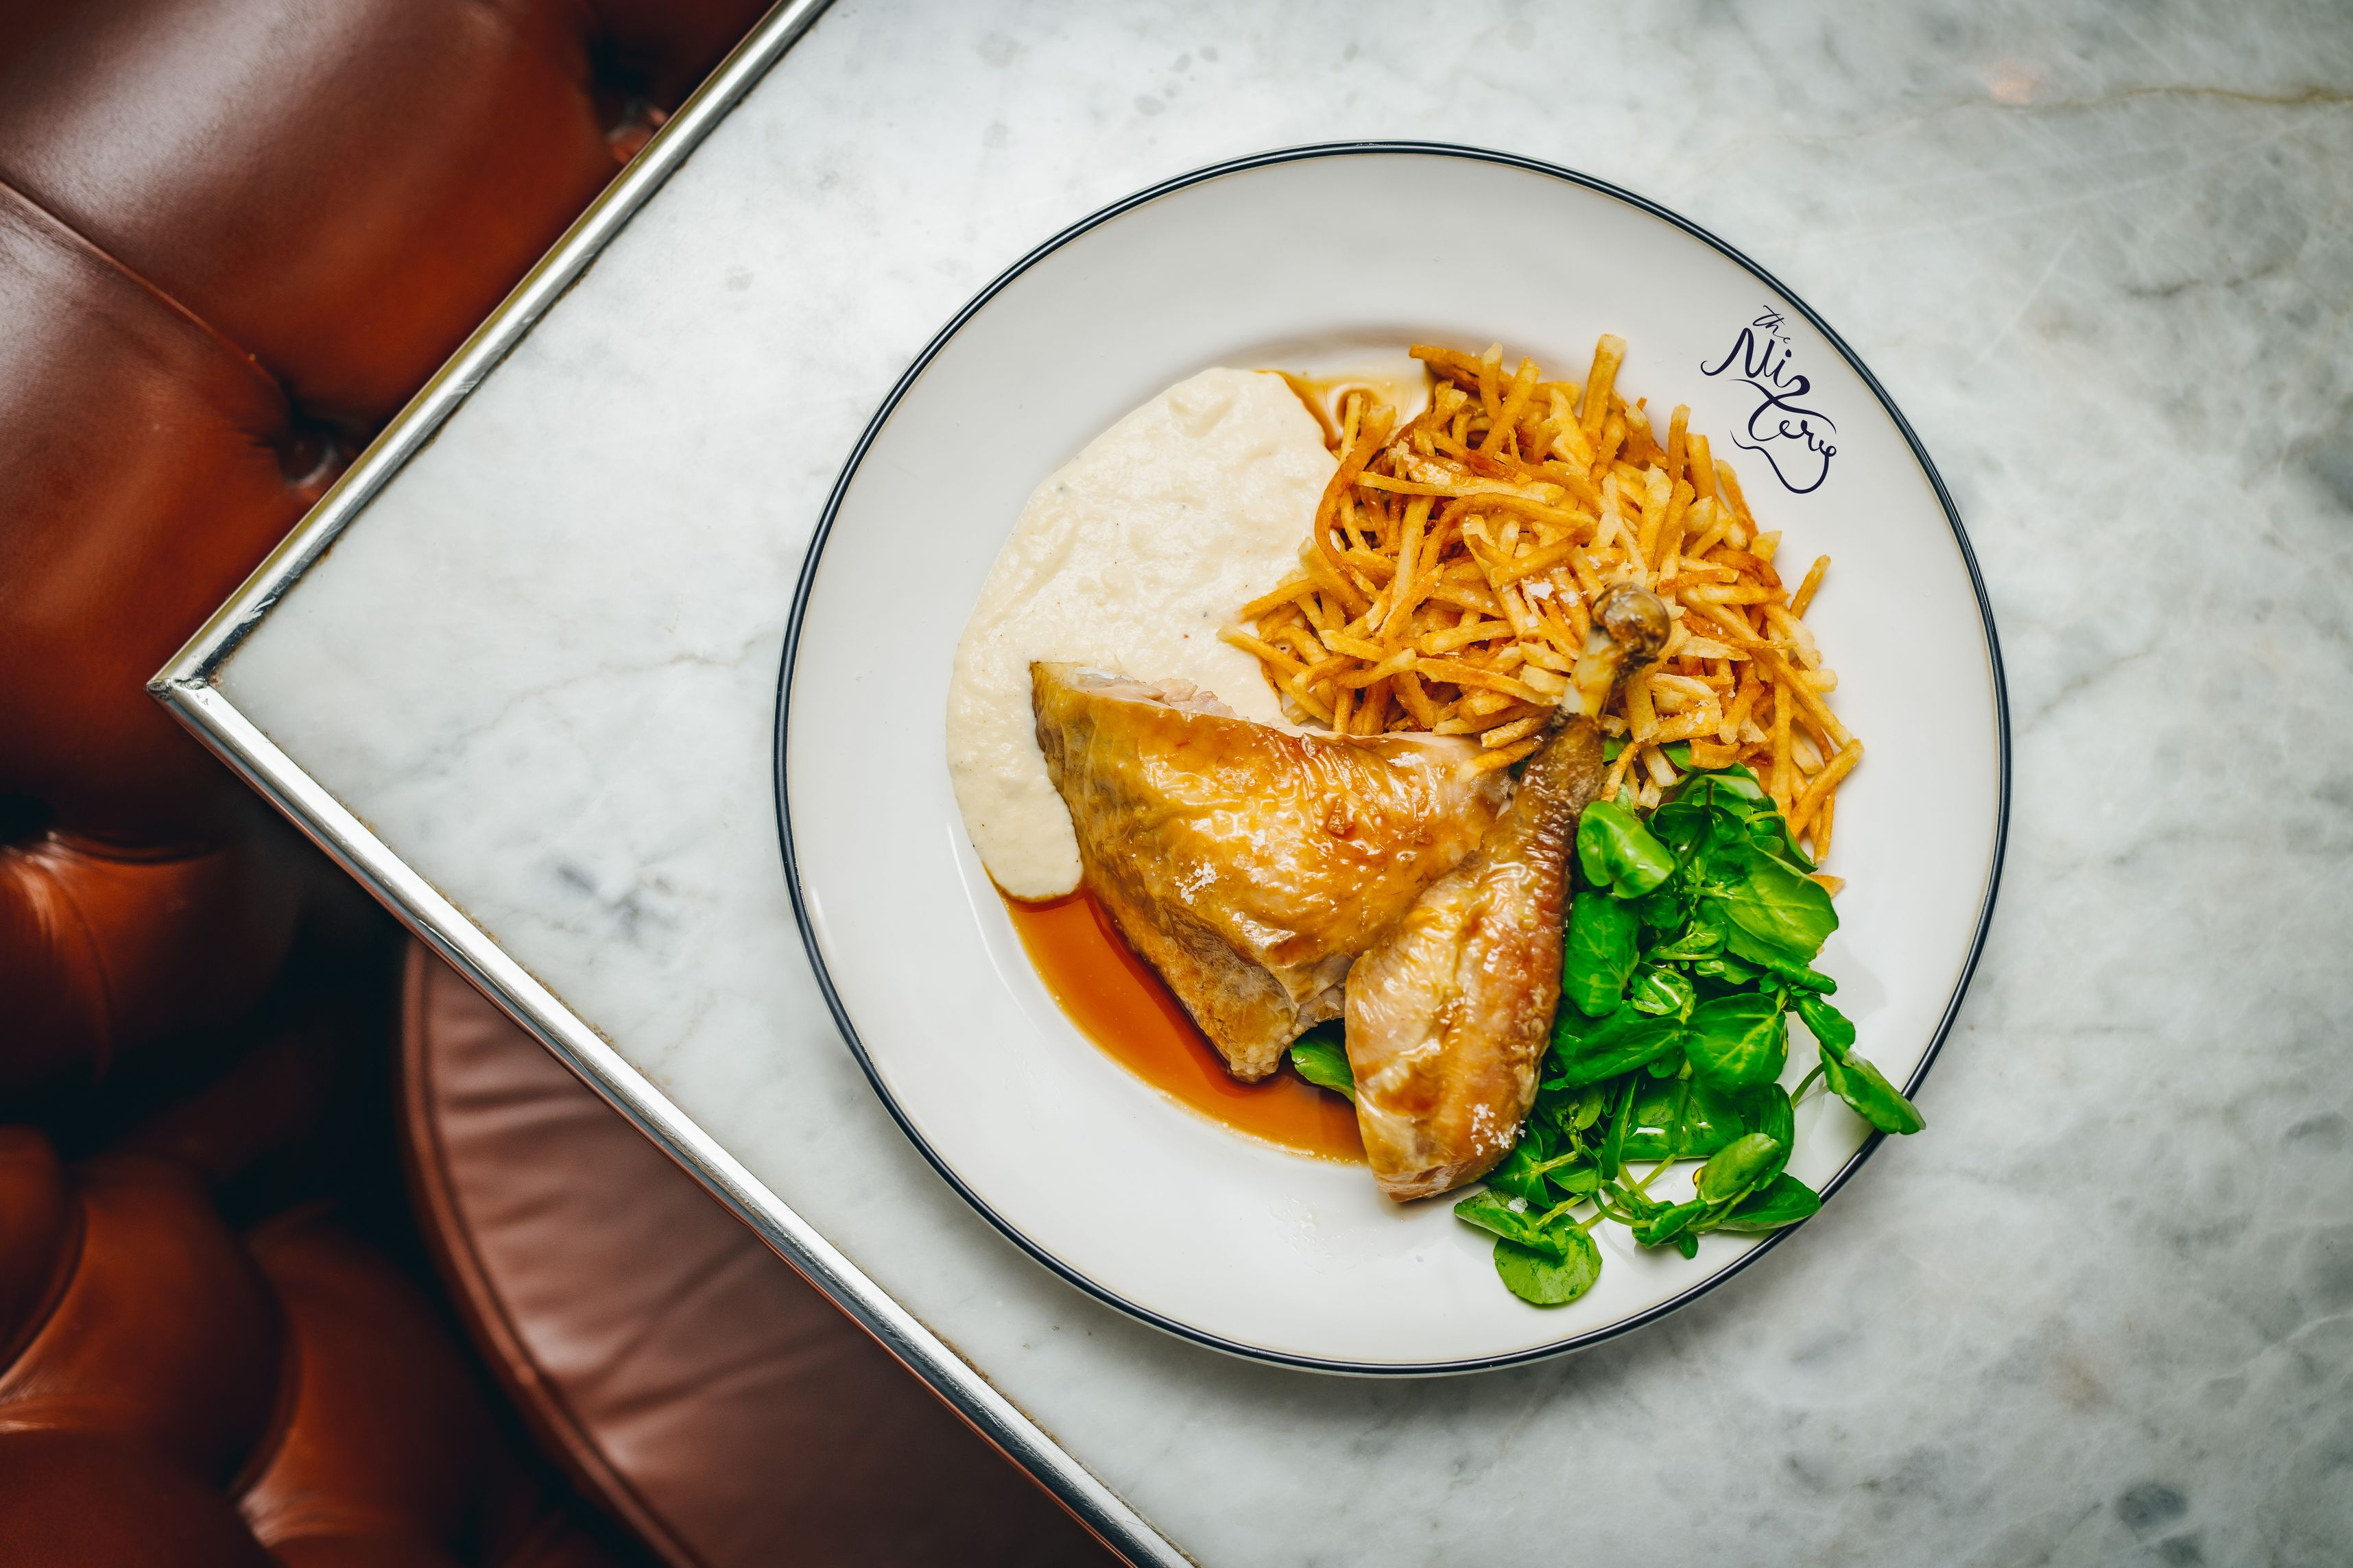 The Nitery by Gizzi Erskine at St Martins Lane London